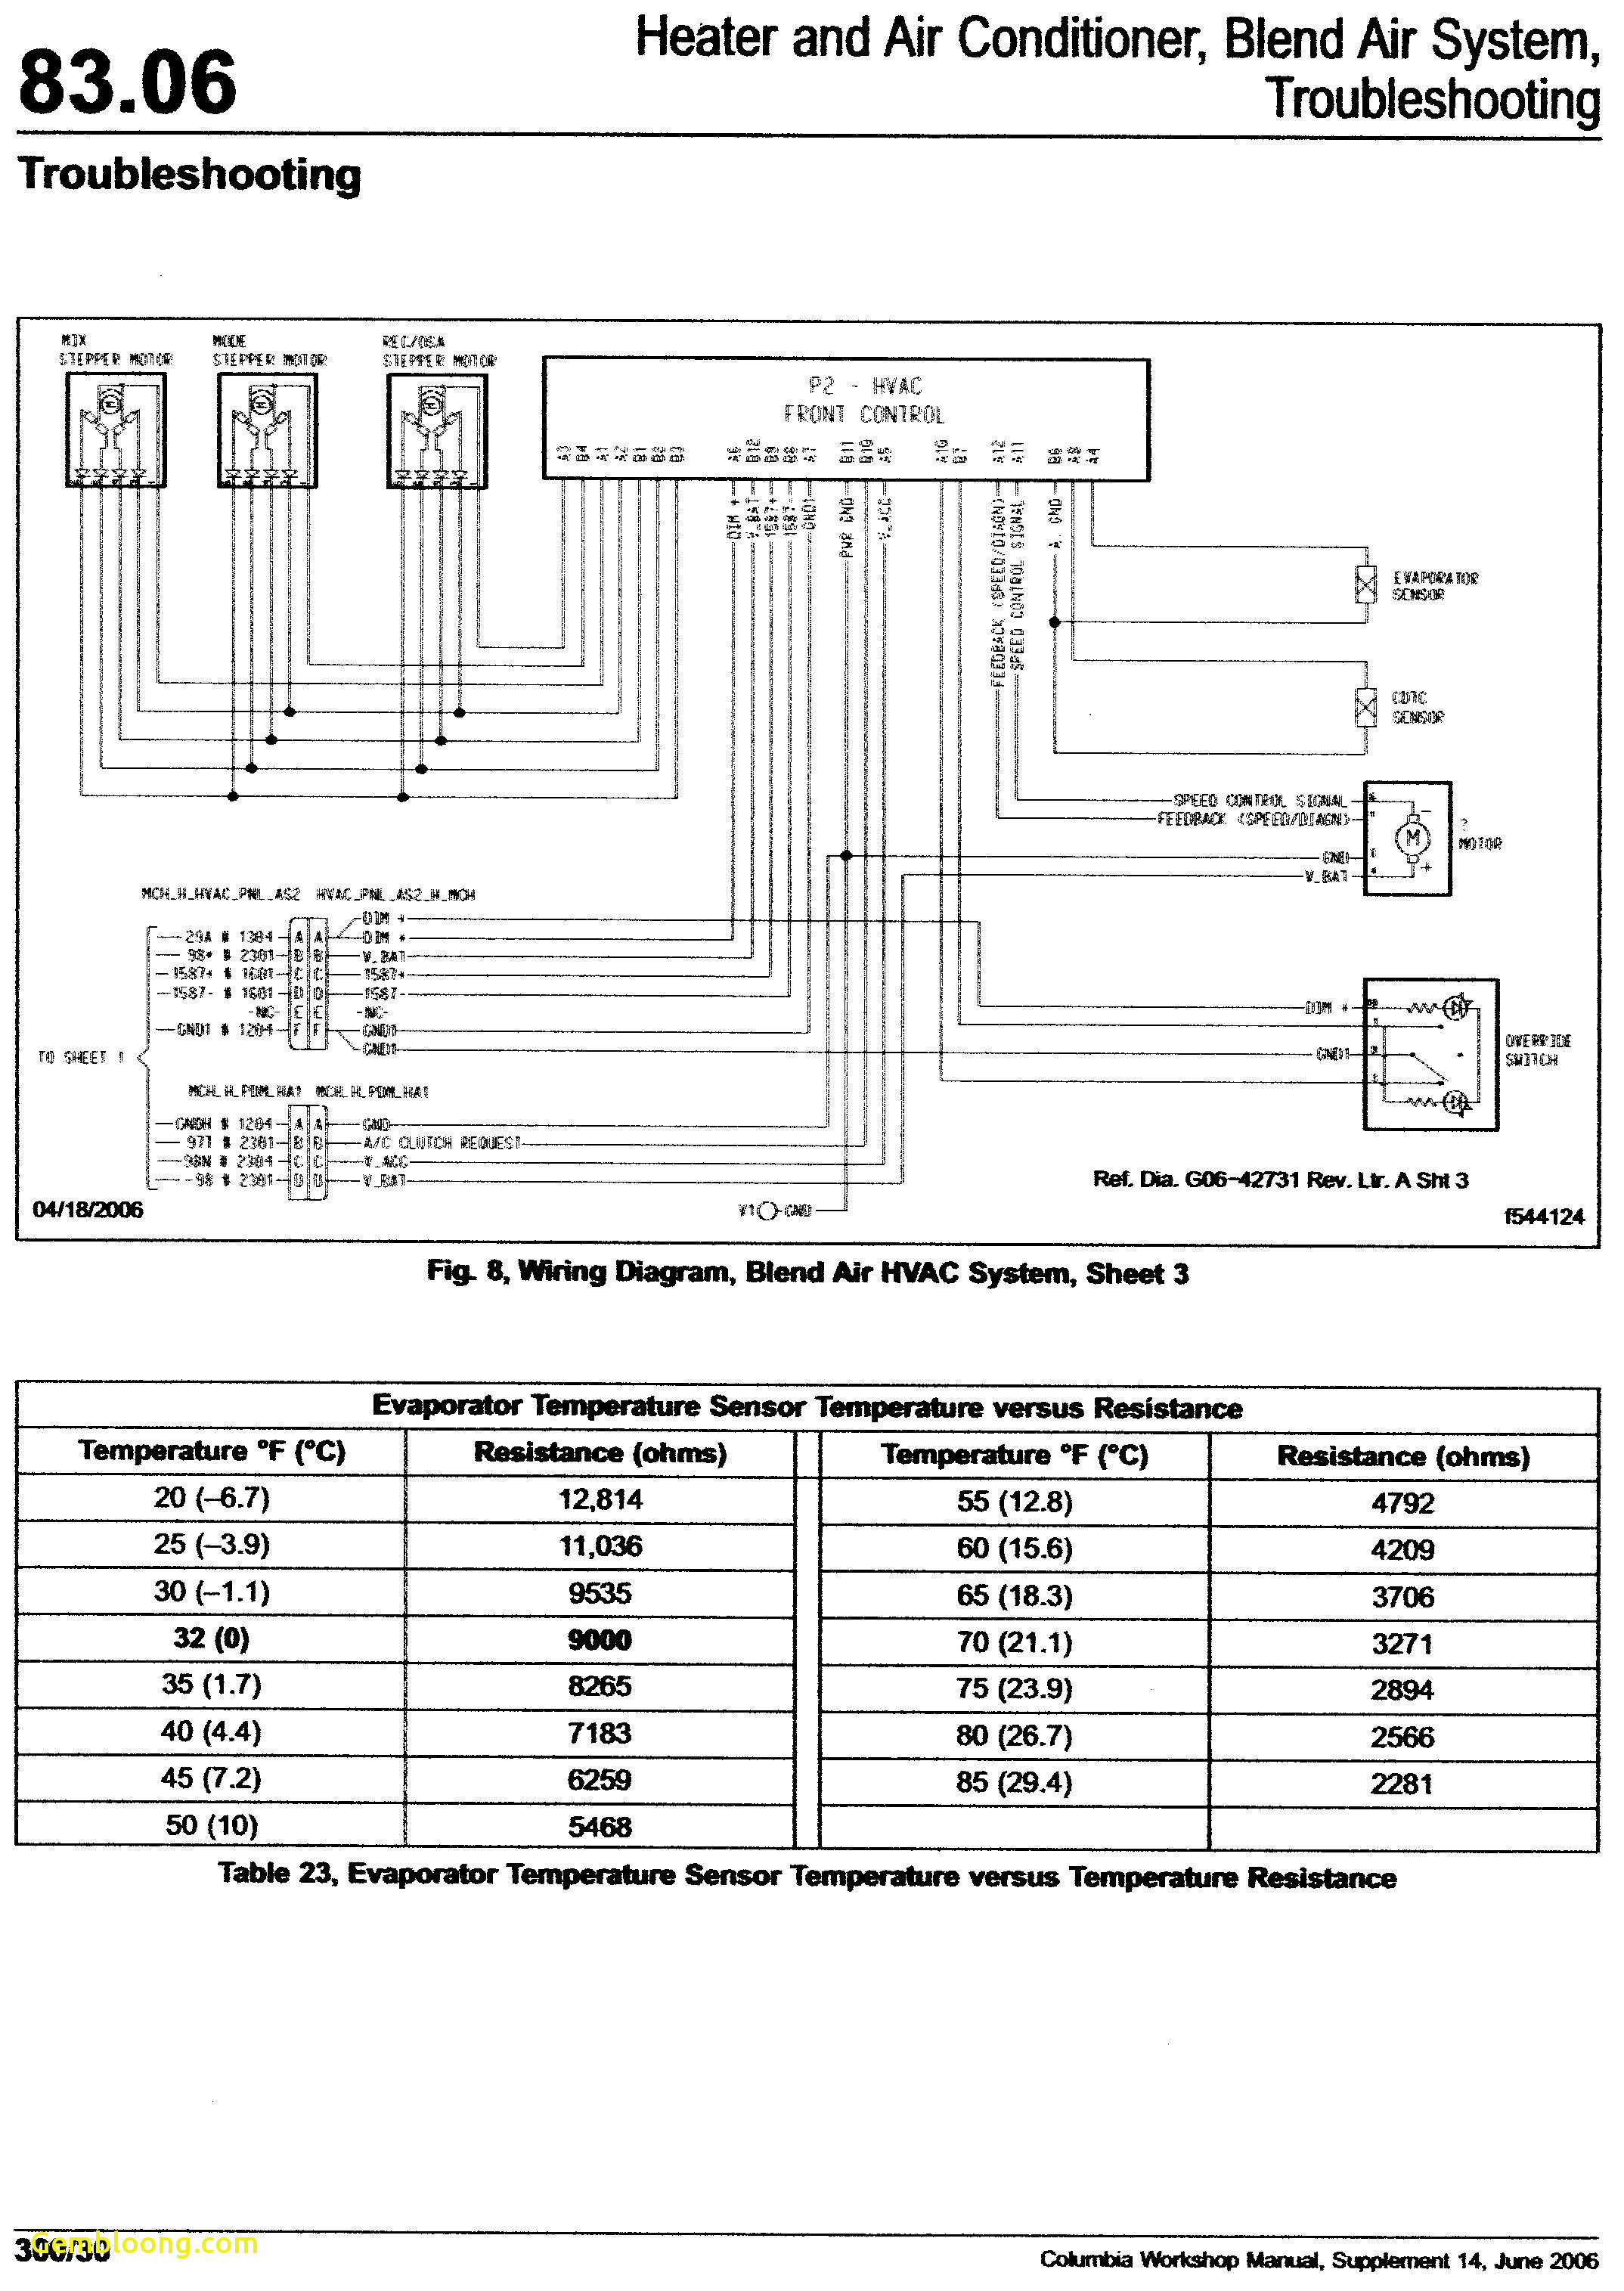 Motor Starter Wiring Diagram For Freightliner | Manual E-Books - Freightliner Starter Solenoid Wiring Diagram